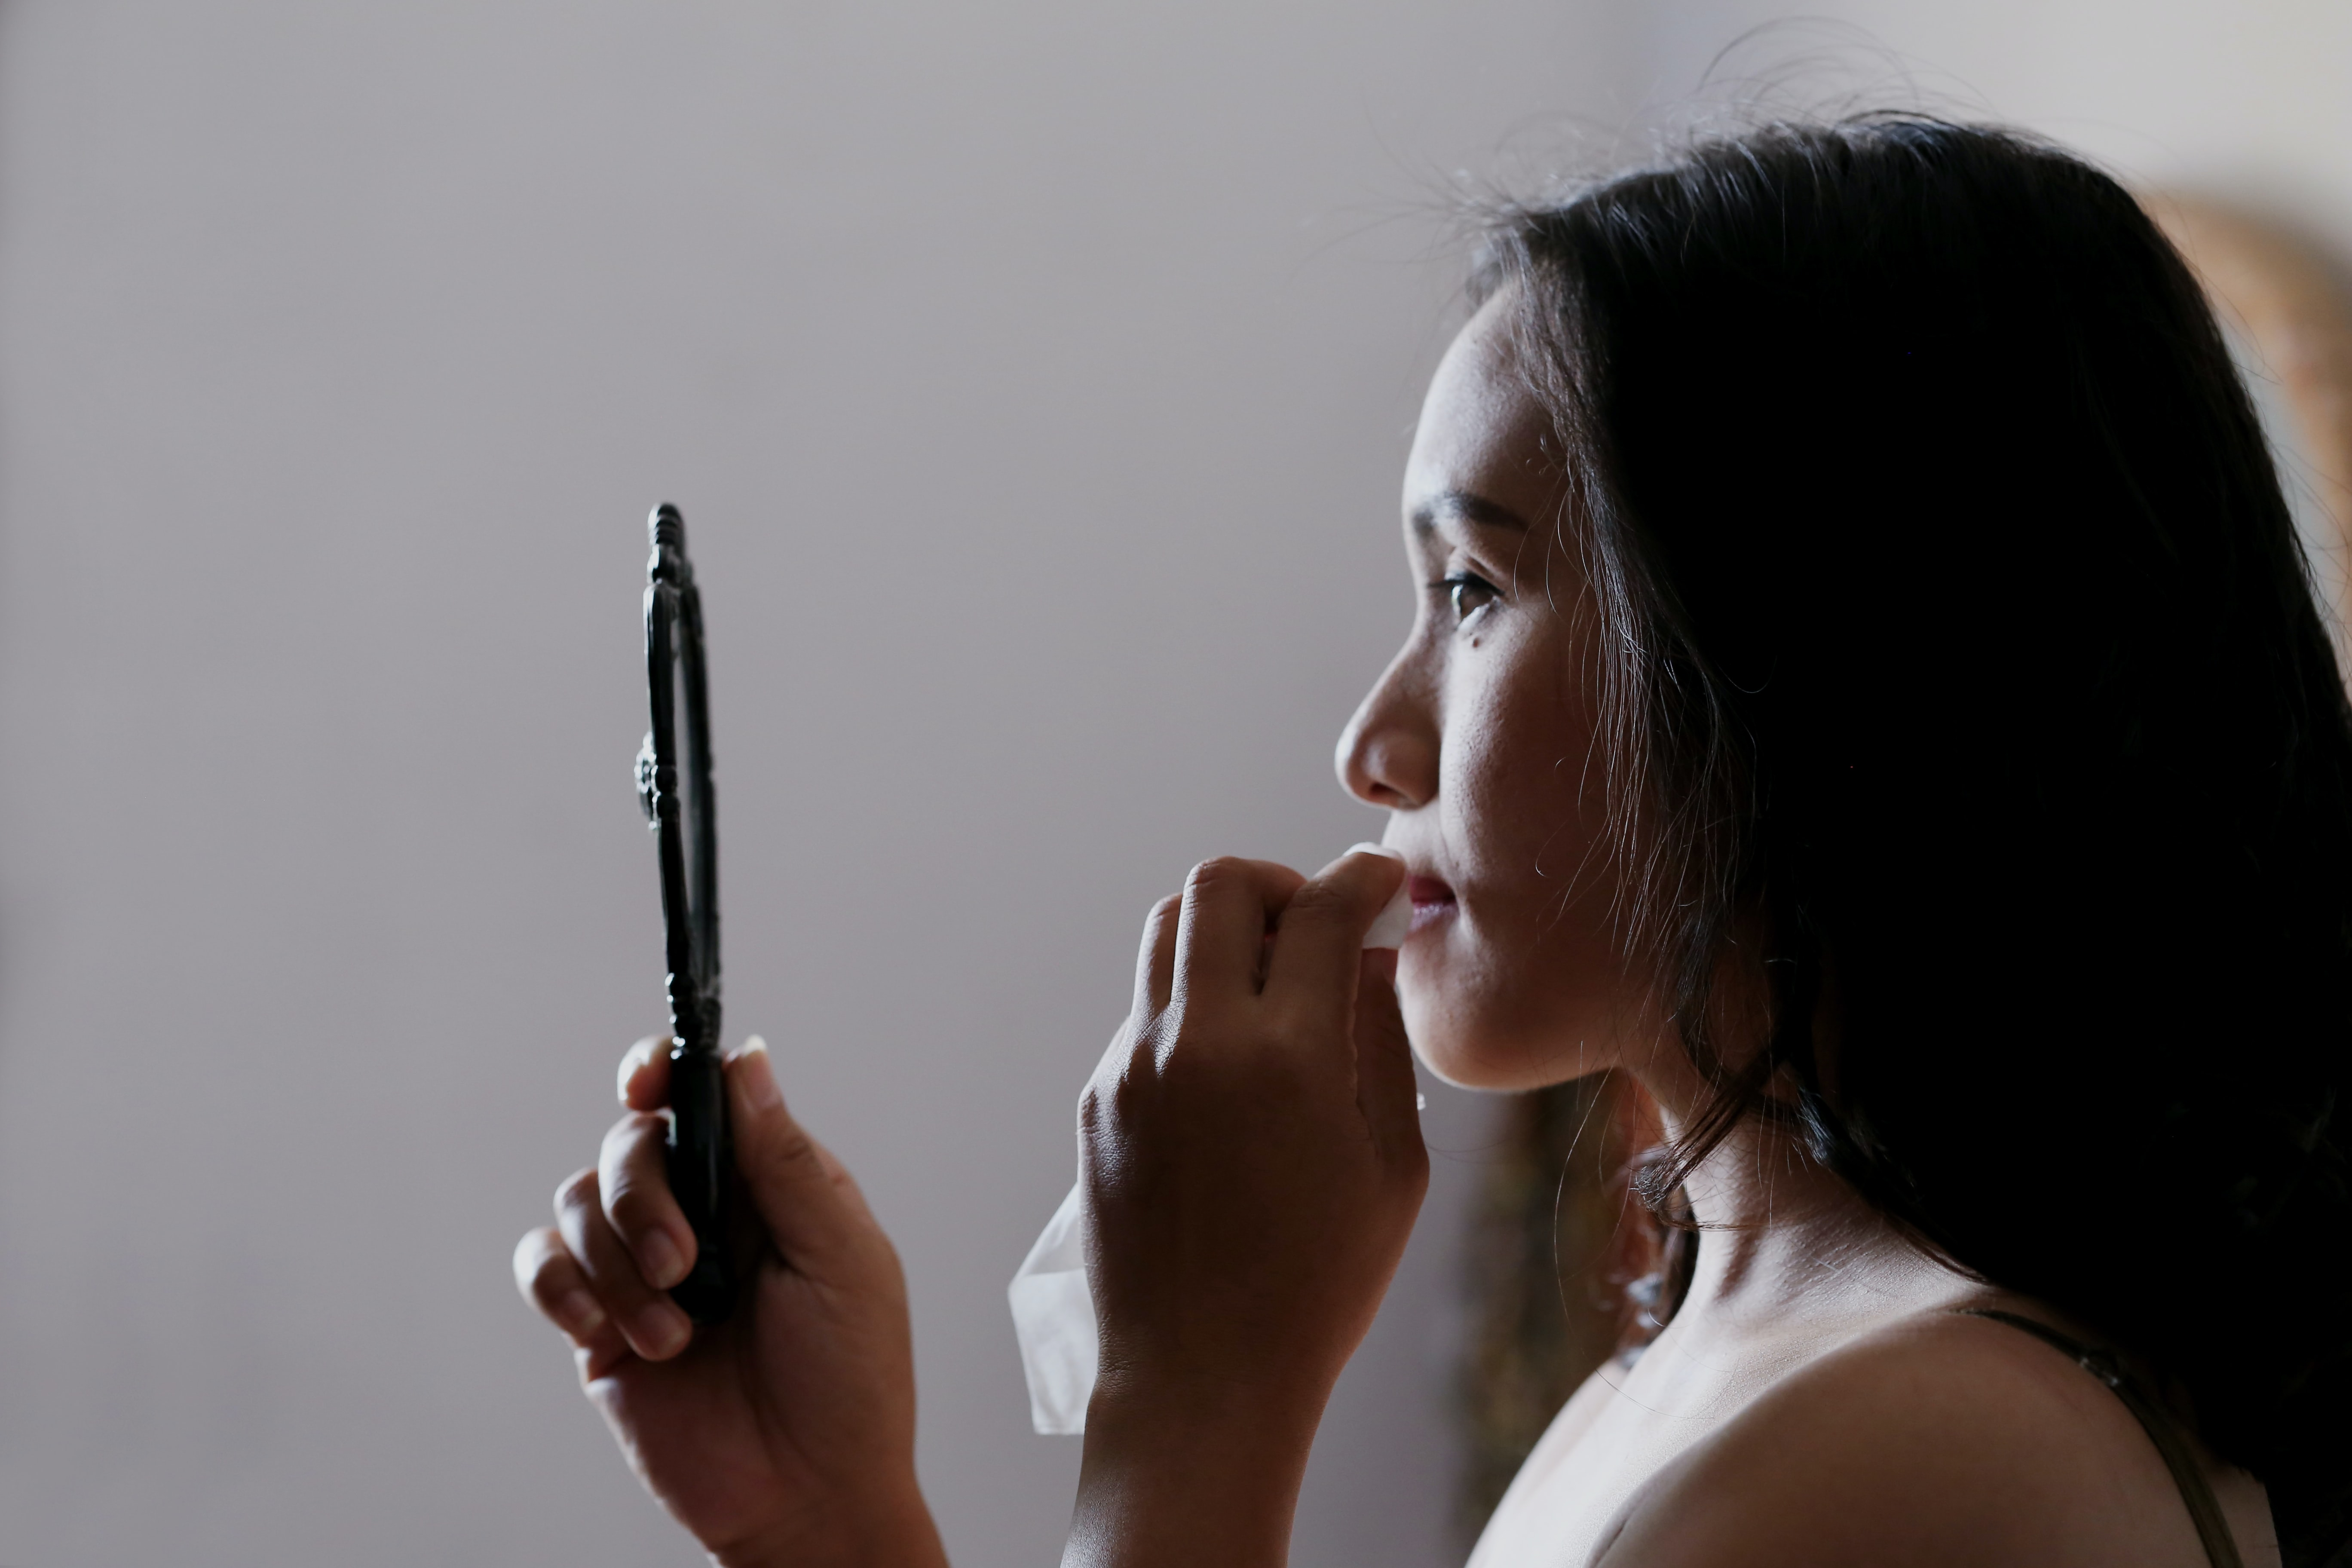 Woman takes off her make-up looking in the mirror